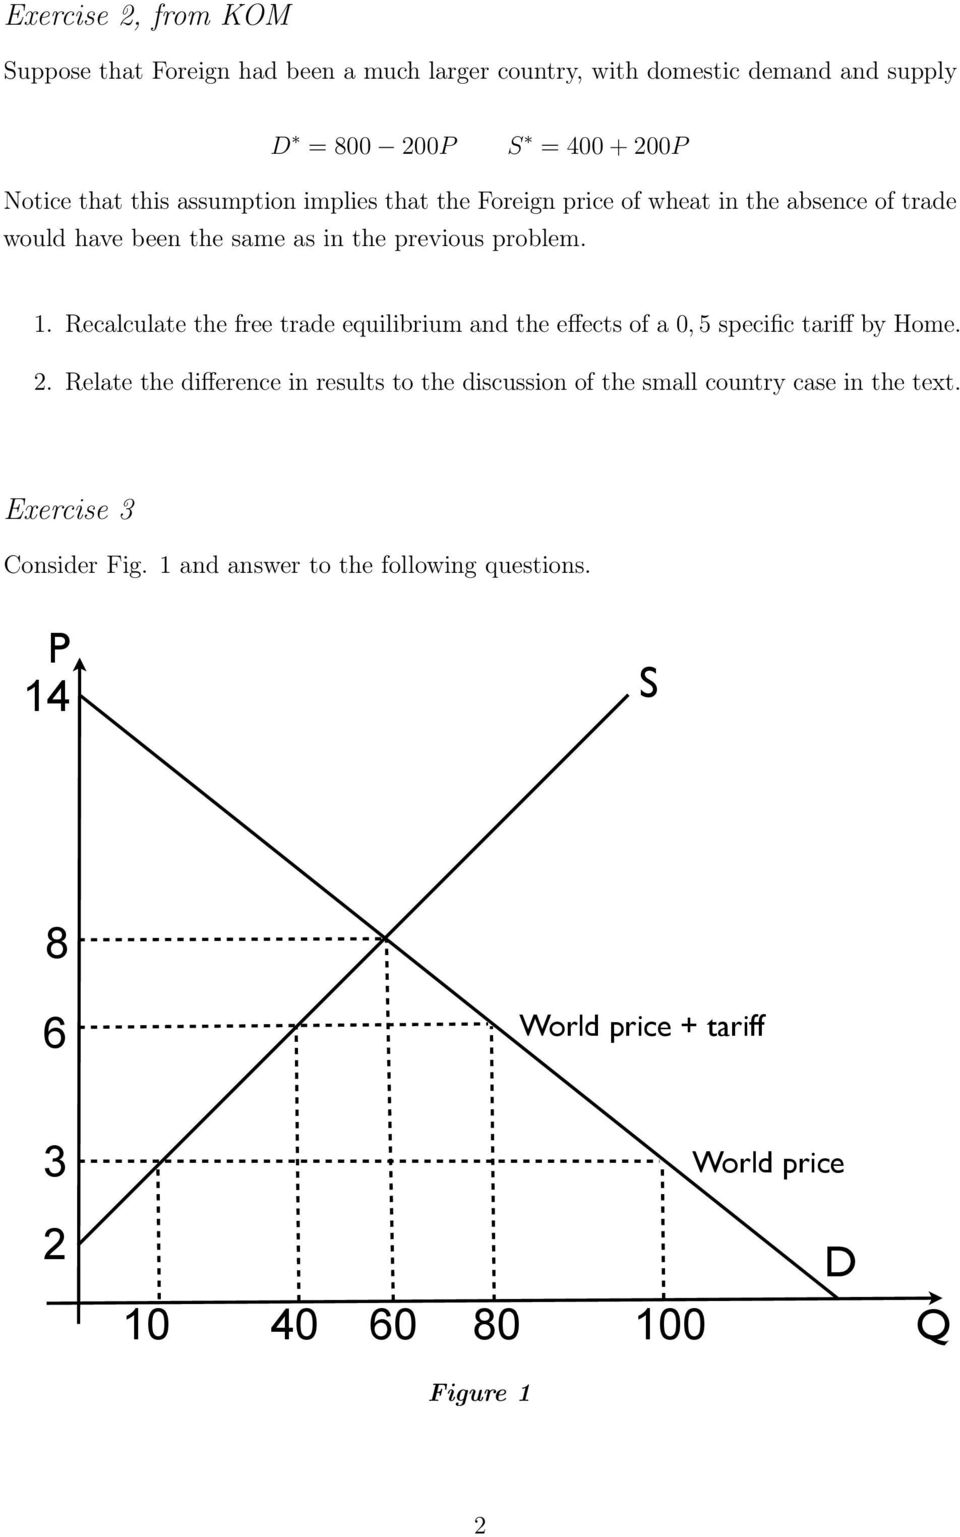 Recalculate the free trade equilibrium and the effects of a 0, 5 specific tariff by Home.